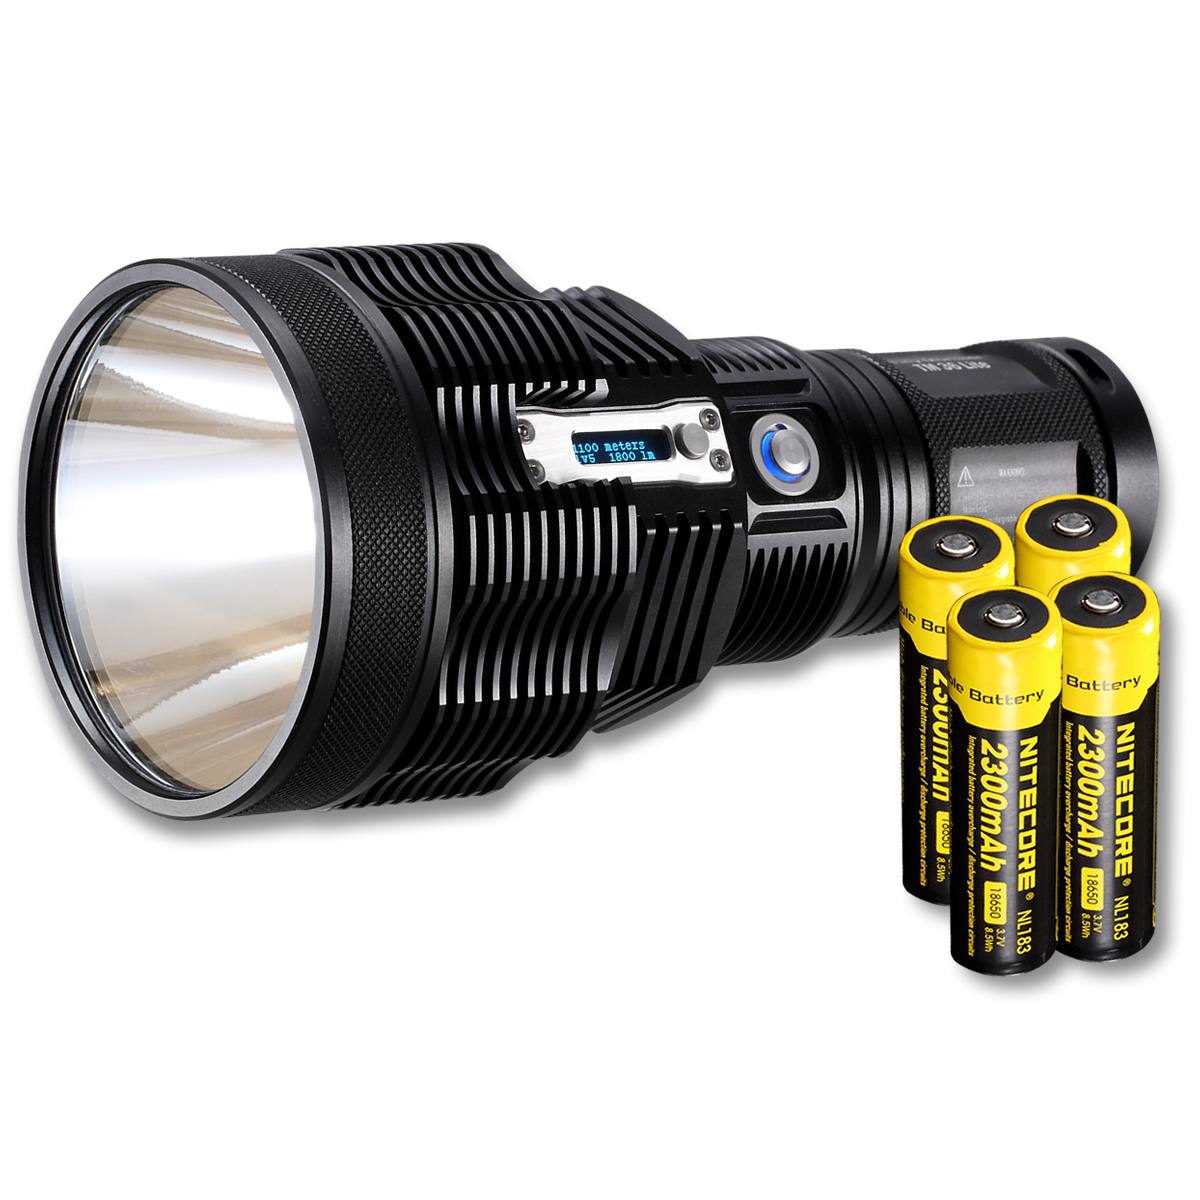 SALE Nitecore TM38 Lite with 4x 18650 Battery 1800 Lumens CREE XHP35 HI D4 LED 1400 Meters Beam Distance Rechargeable Flashlight